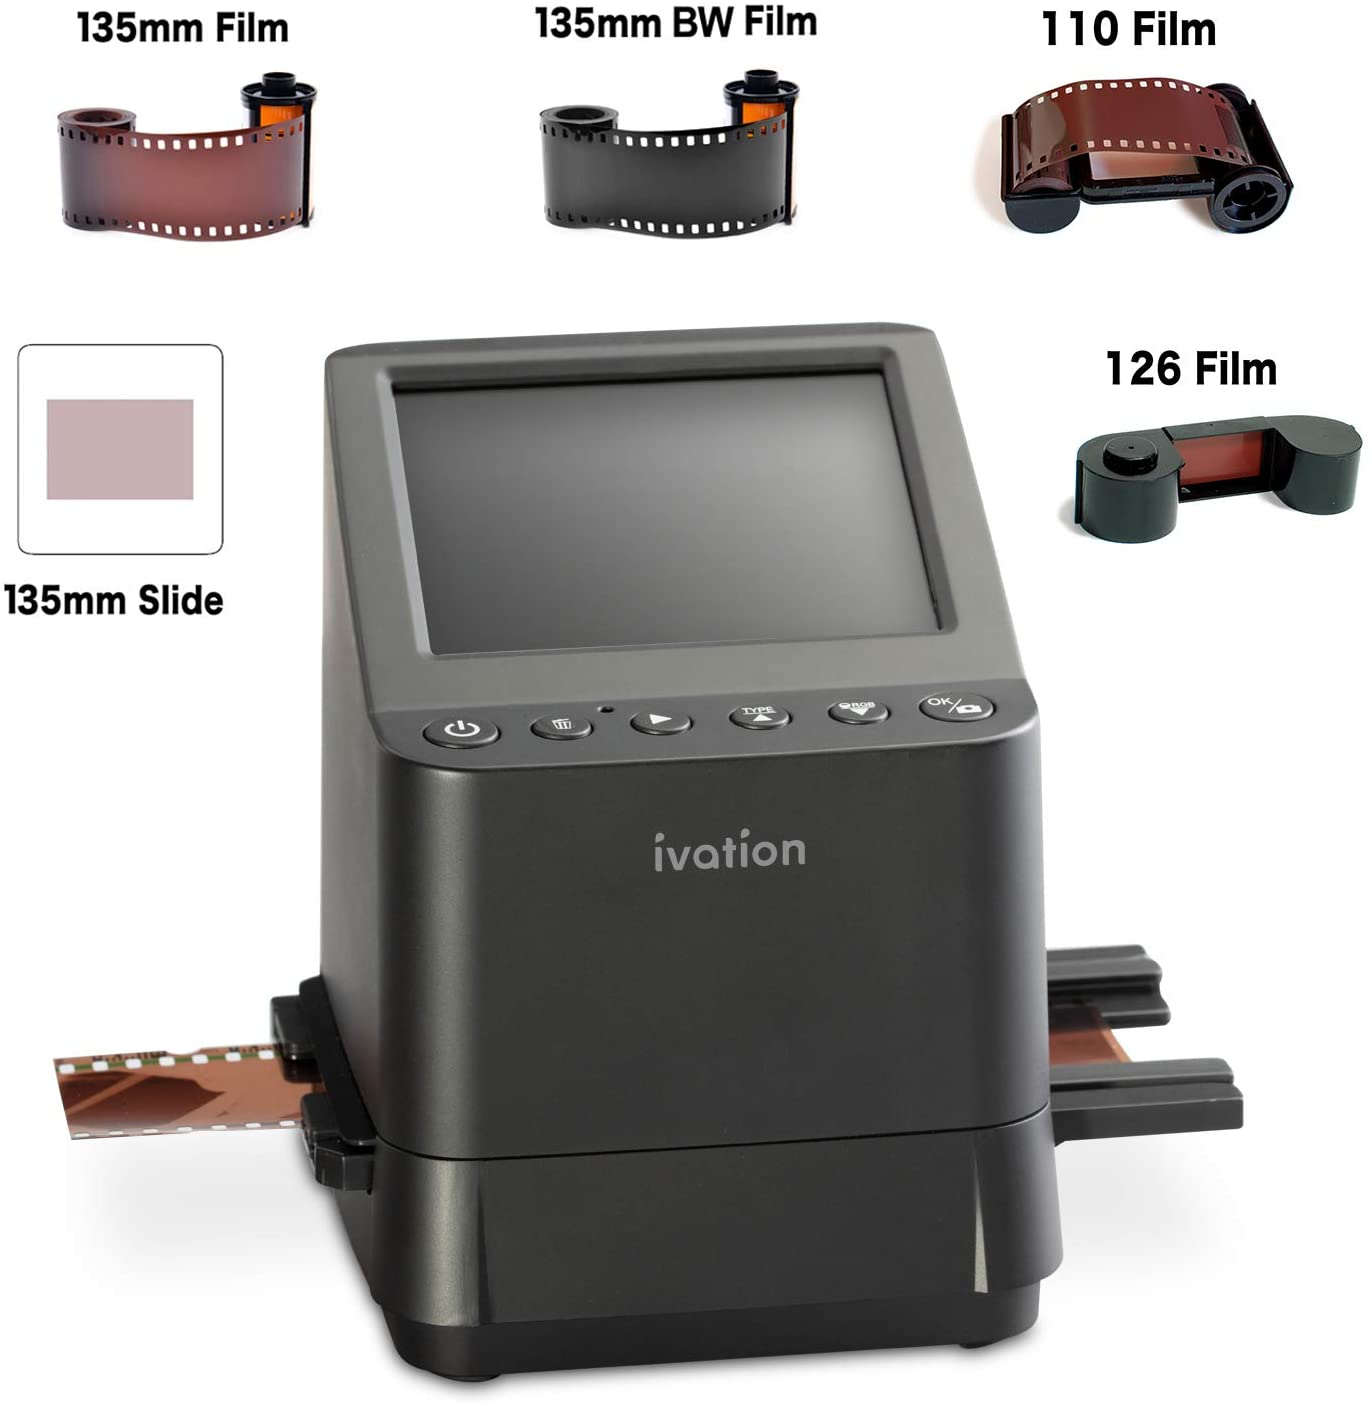 film to digital converter comparison 4 image